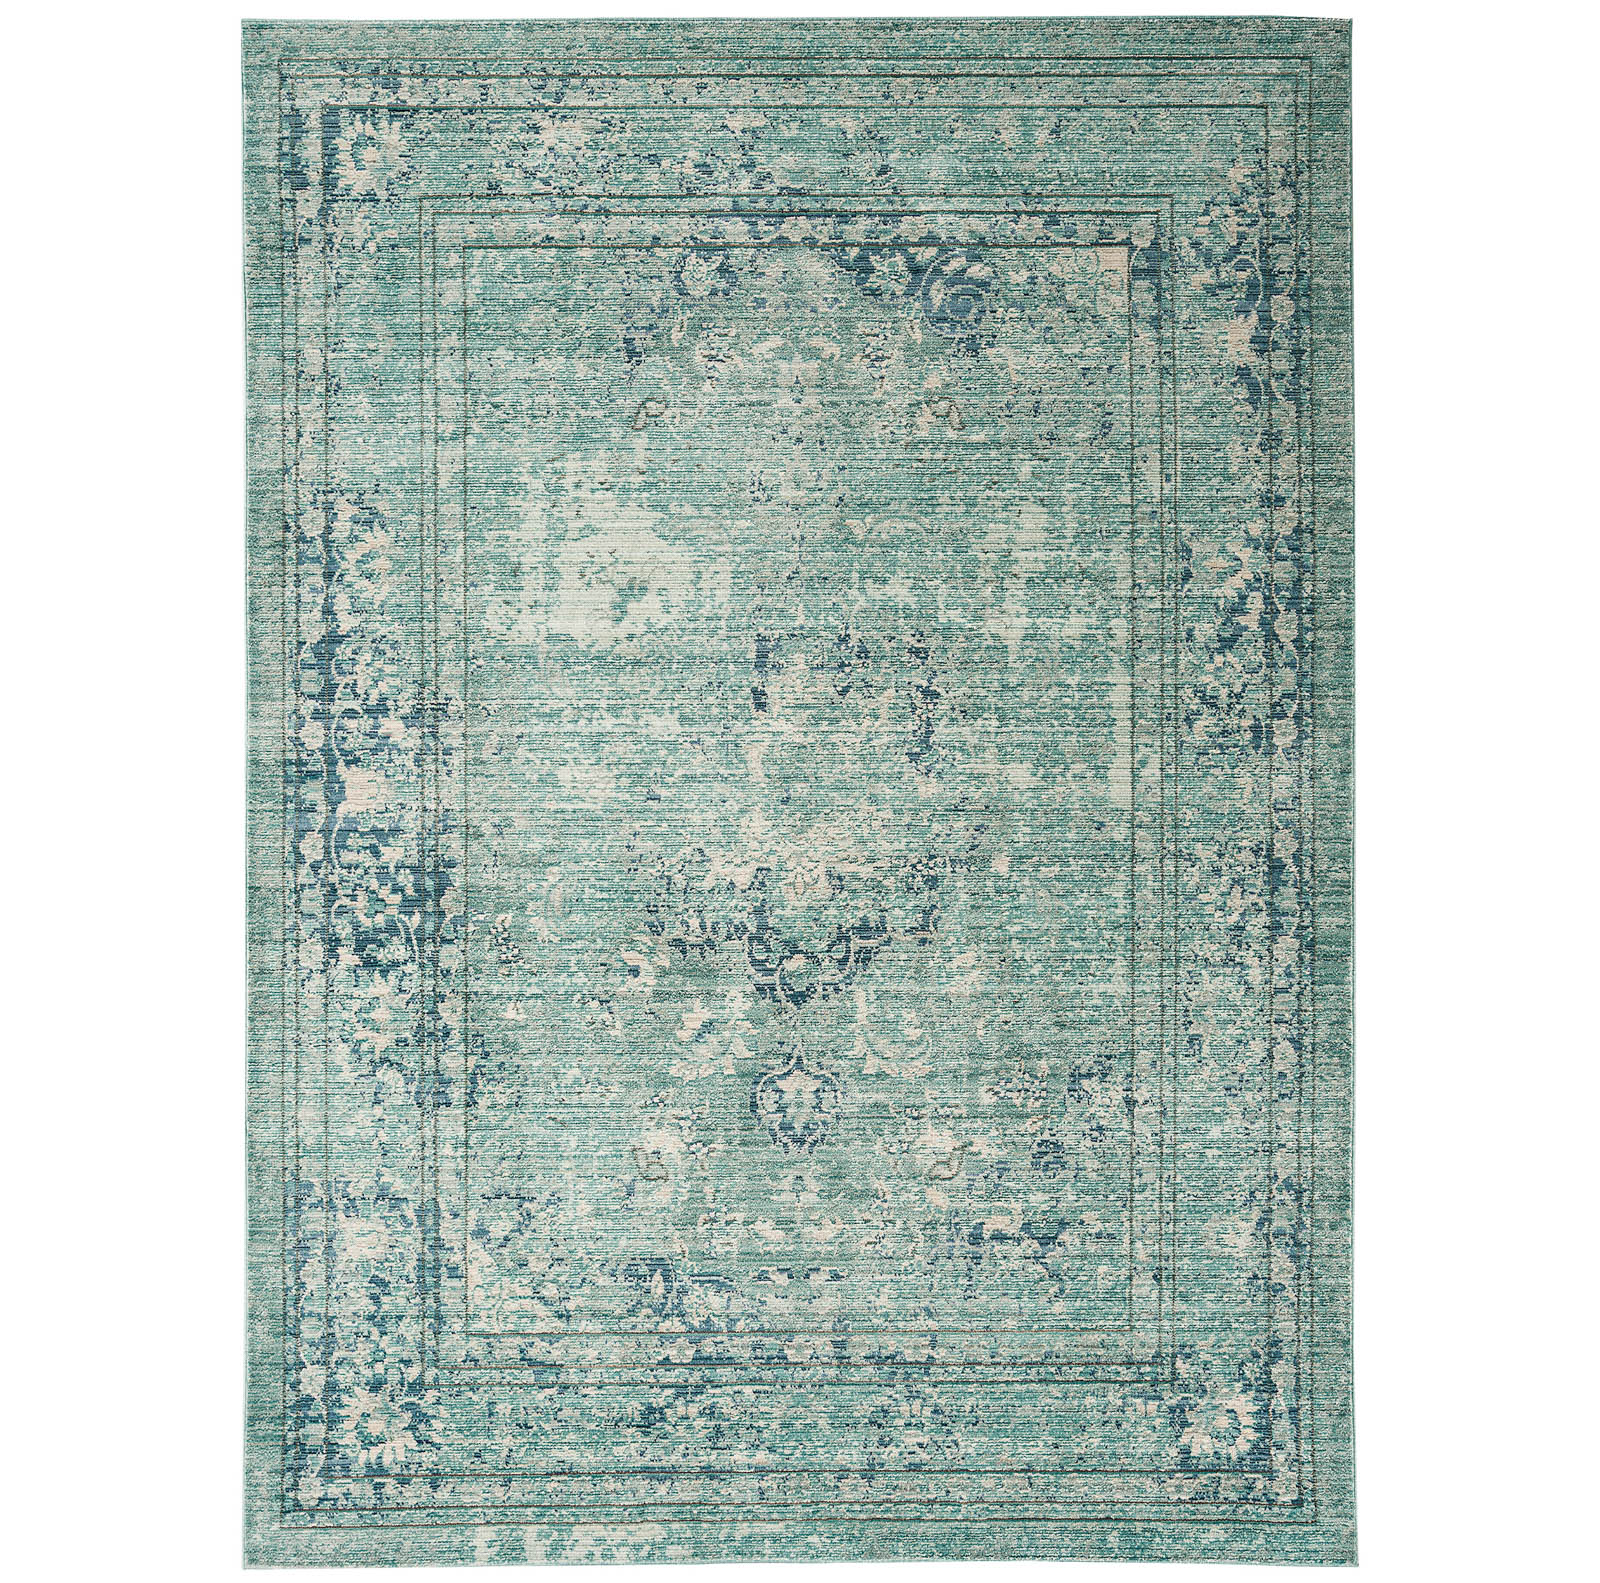 Verve Rugs VE10 in Blue